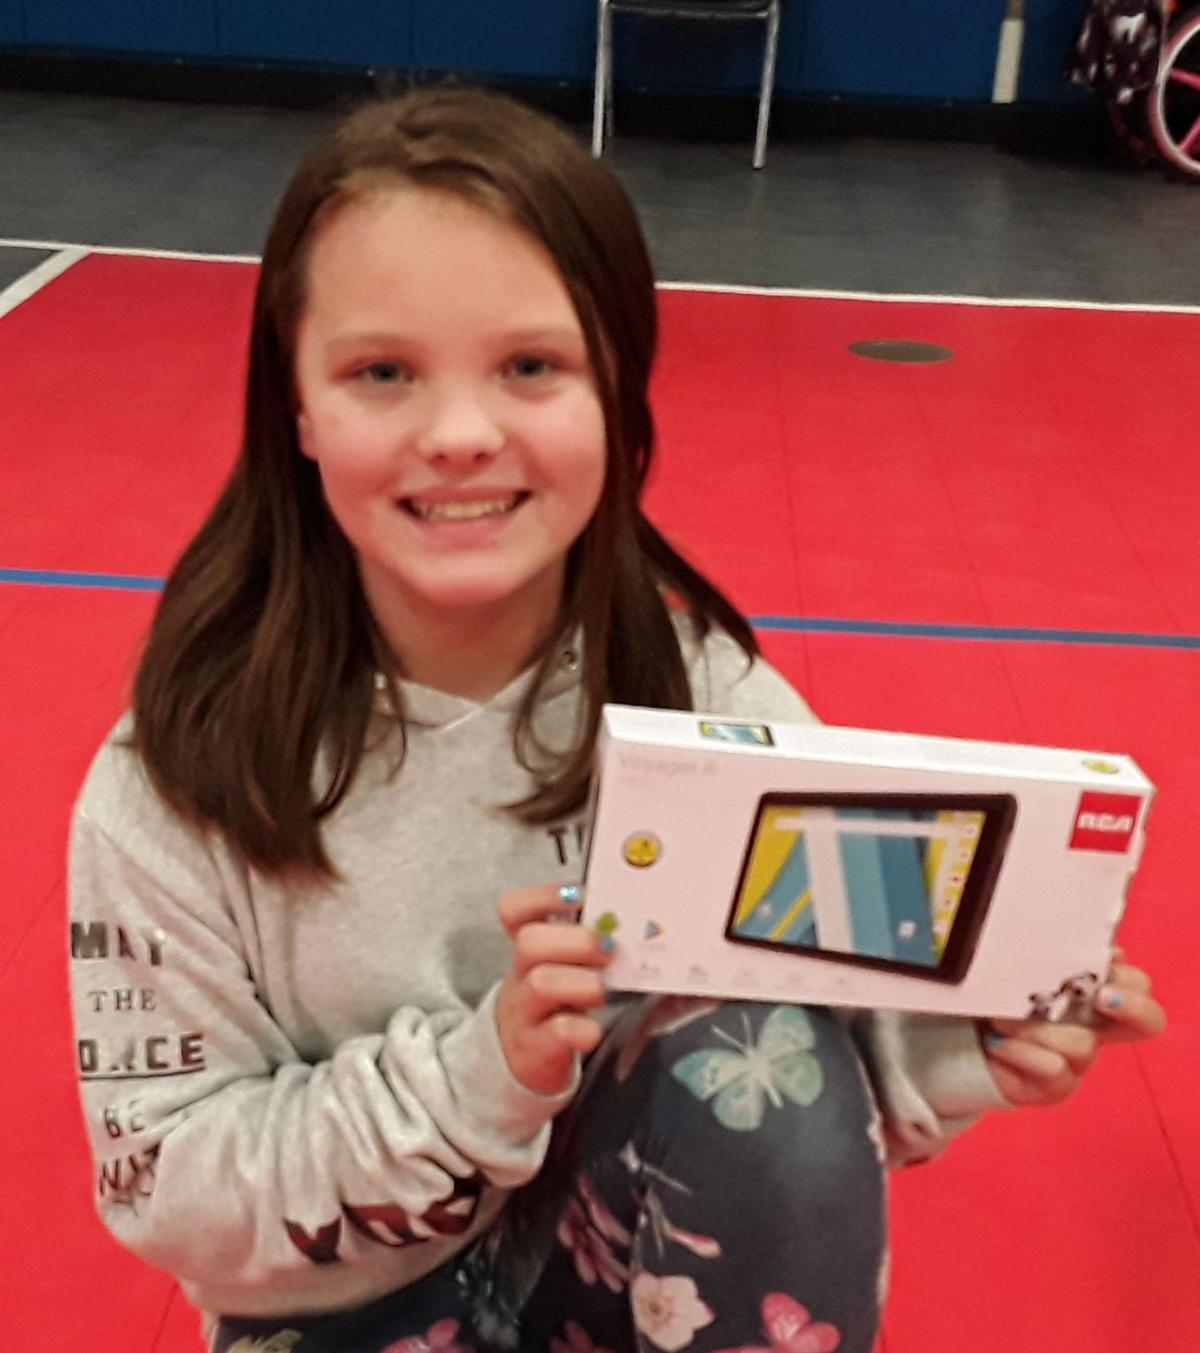 Leah Quirk wins a tablet.jpg